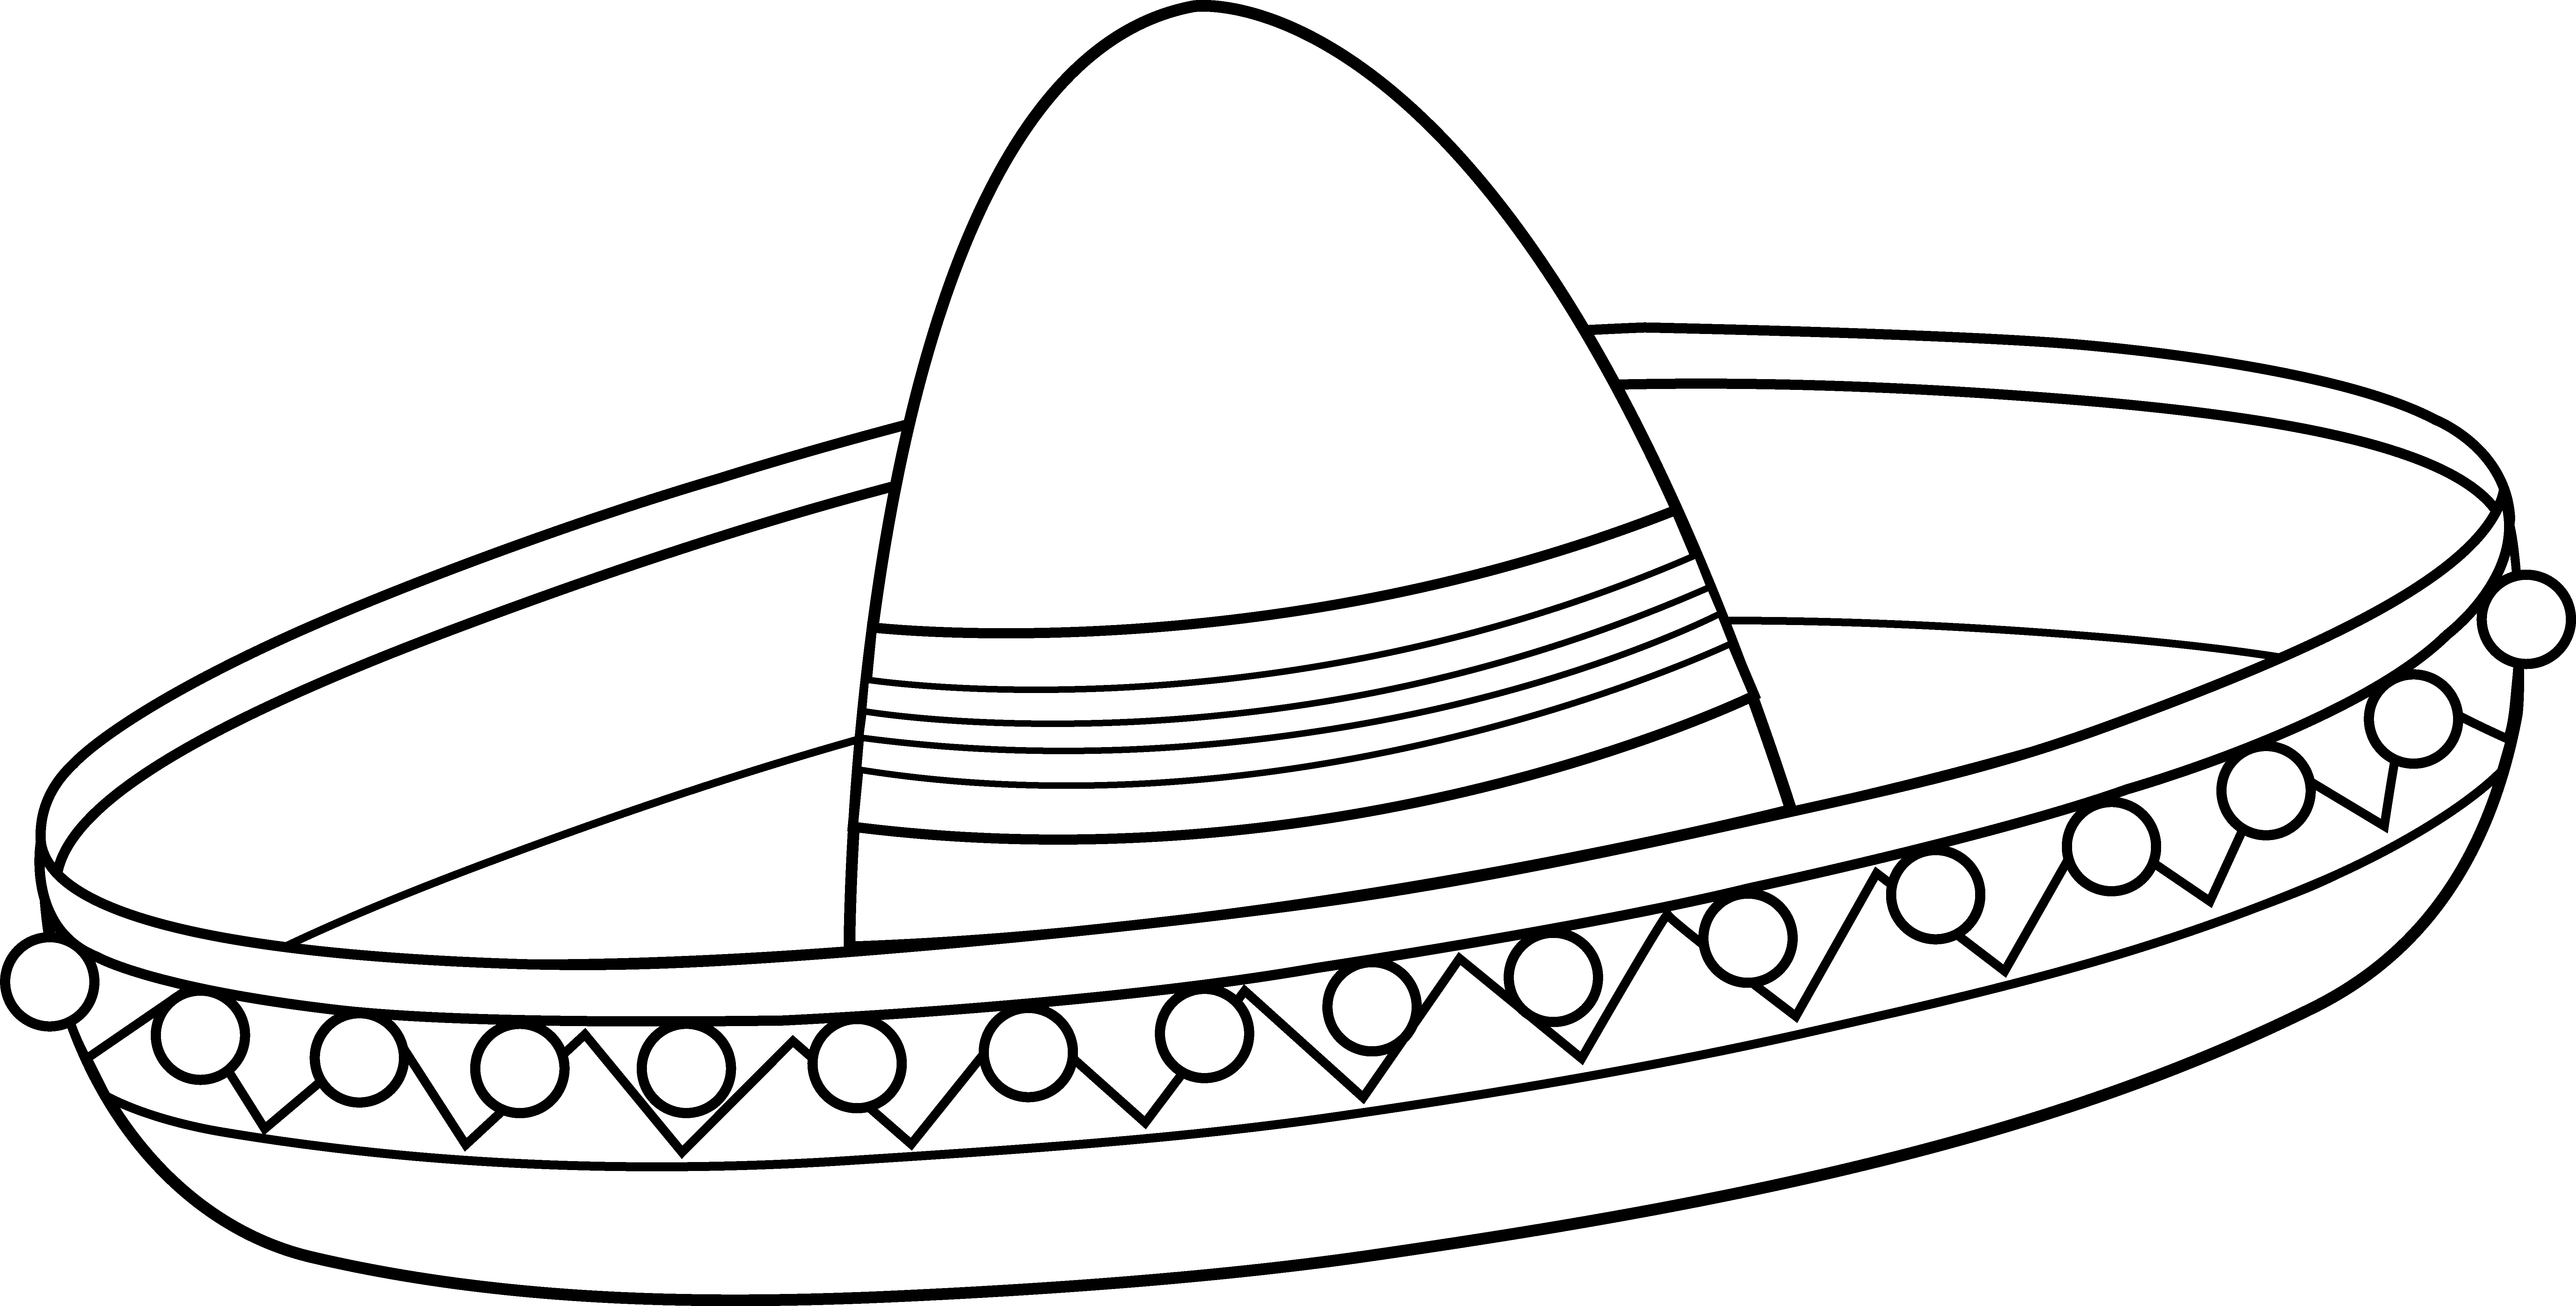 Free Mexican Sombrero Clipart Download Free Clip Art